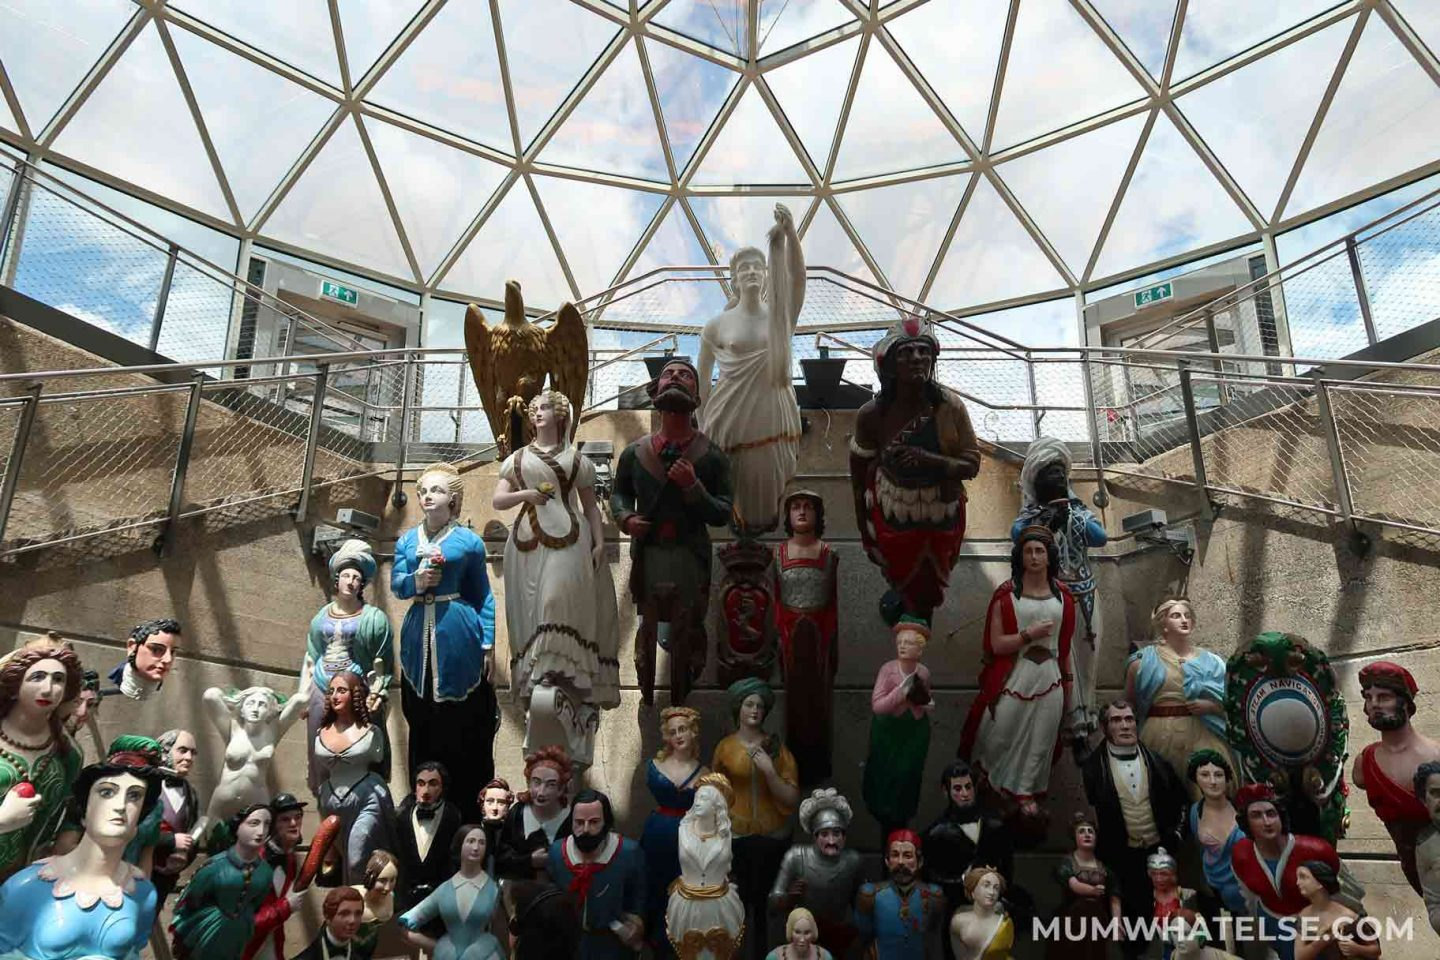 collection of Collection of figureheads